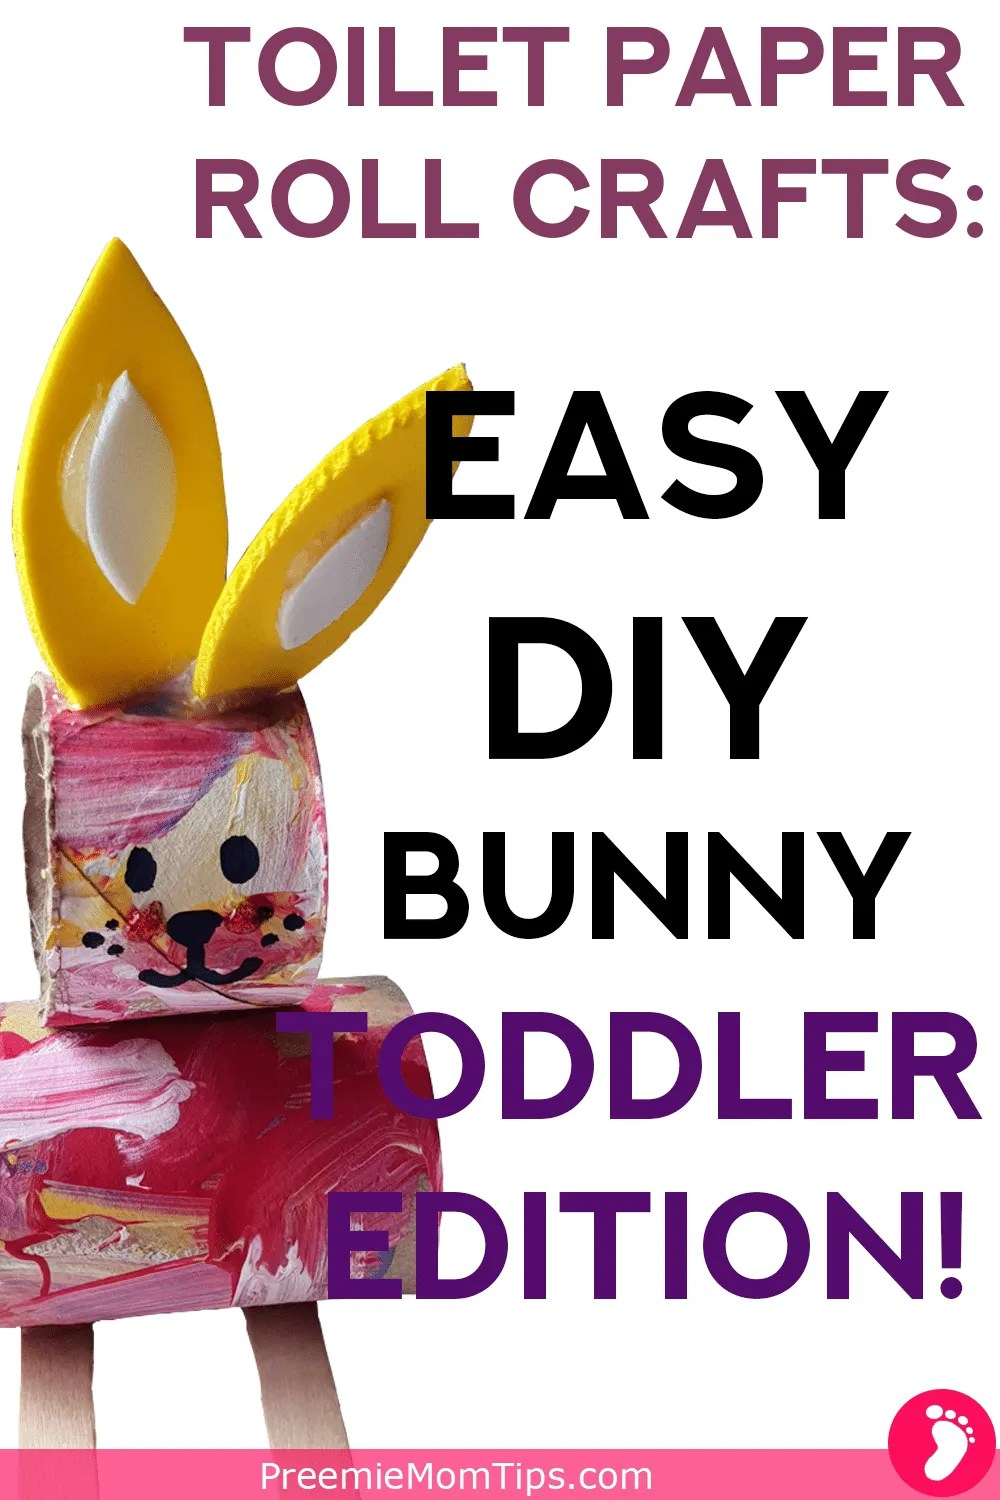 Rainy day? Crafty mommy? Bored toddler? Why don't you try this adorable toilet paper roll bunny with your toddler to spark the fun and the creativity! Get ready fora super fun mommy and toddler bonding time!